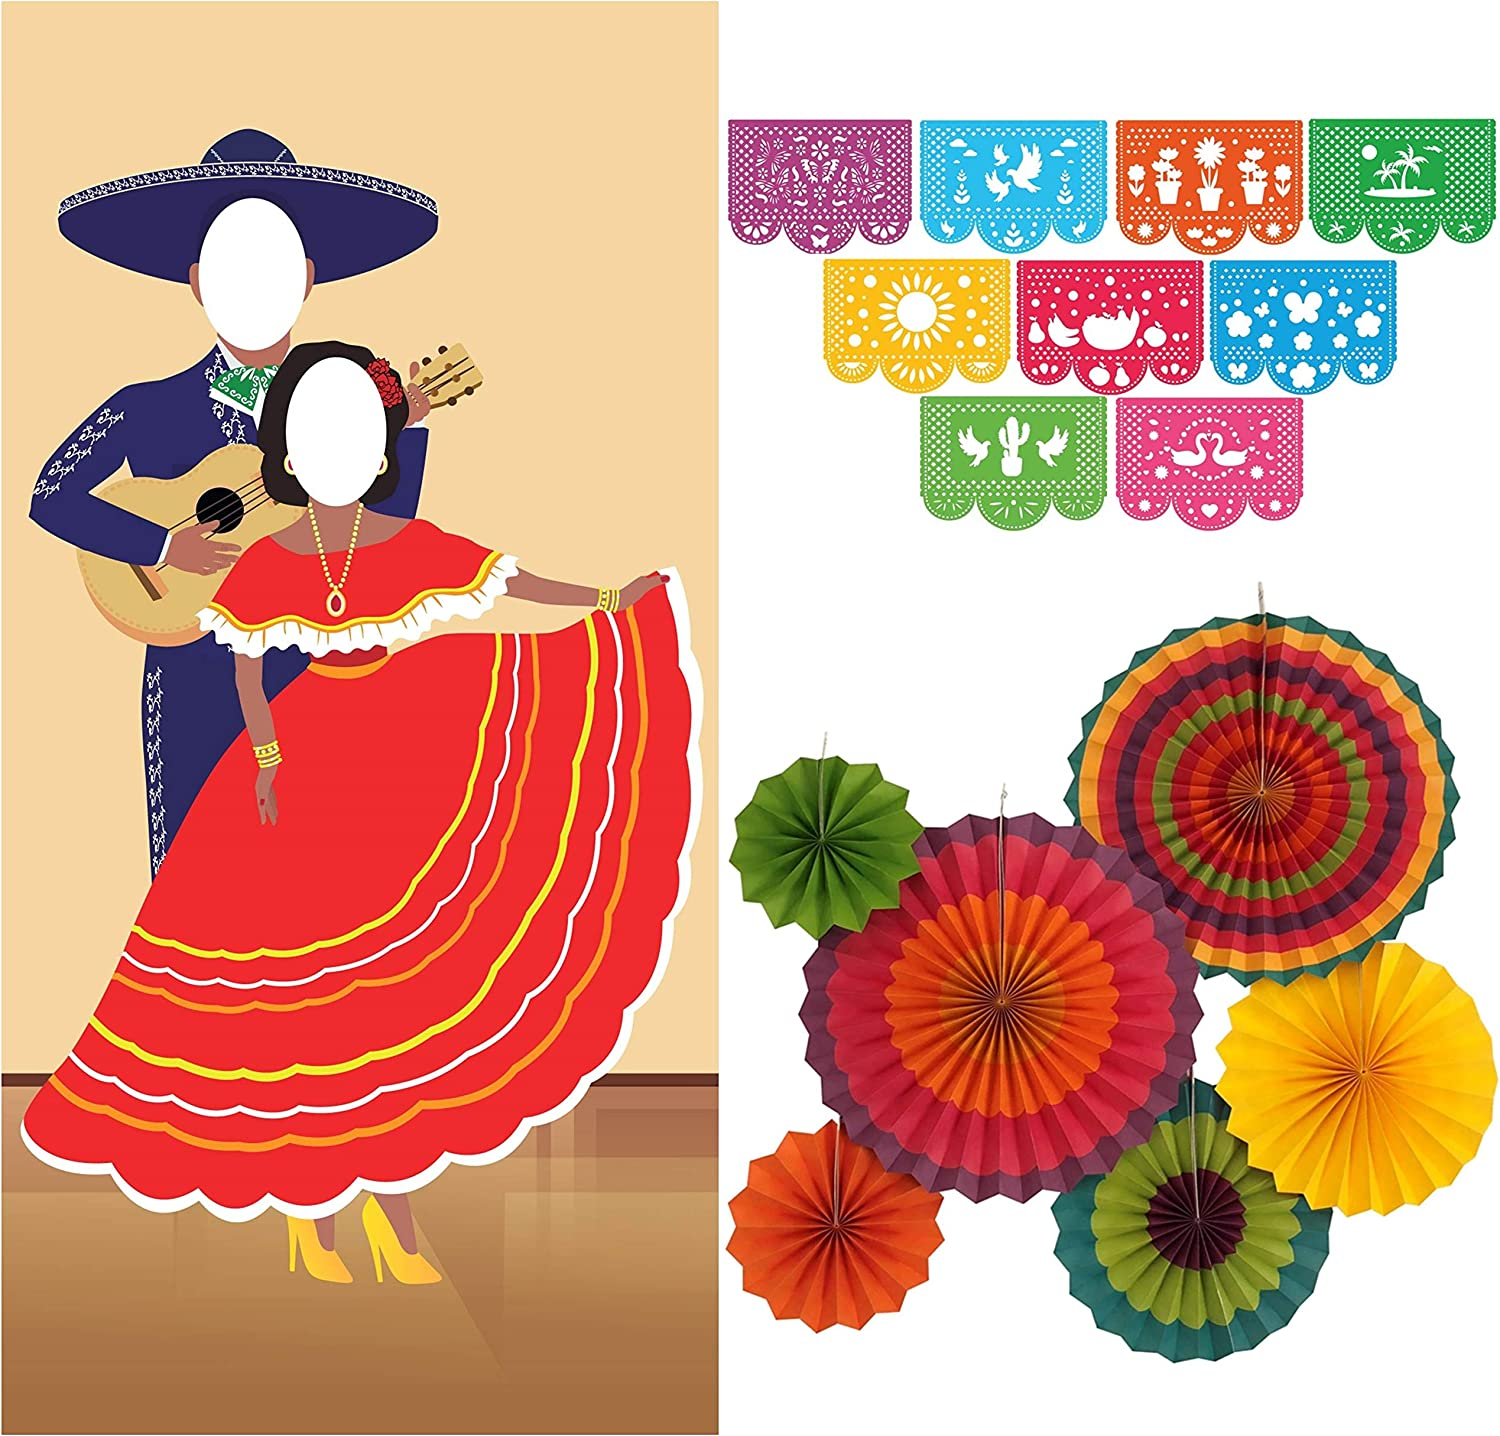 Jelda's Fiesta Couple Photo Door Banner with Fiesta Party Decorations | Mexican Party Decorations and Supplies | Theme Decor for Cinco De Mayo | Large Papel Picado Banner | Colorful Paper Fans